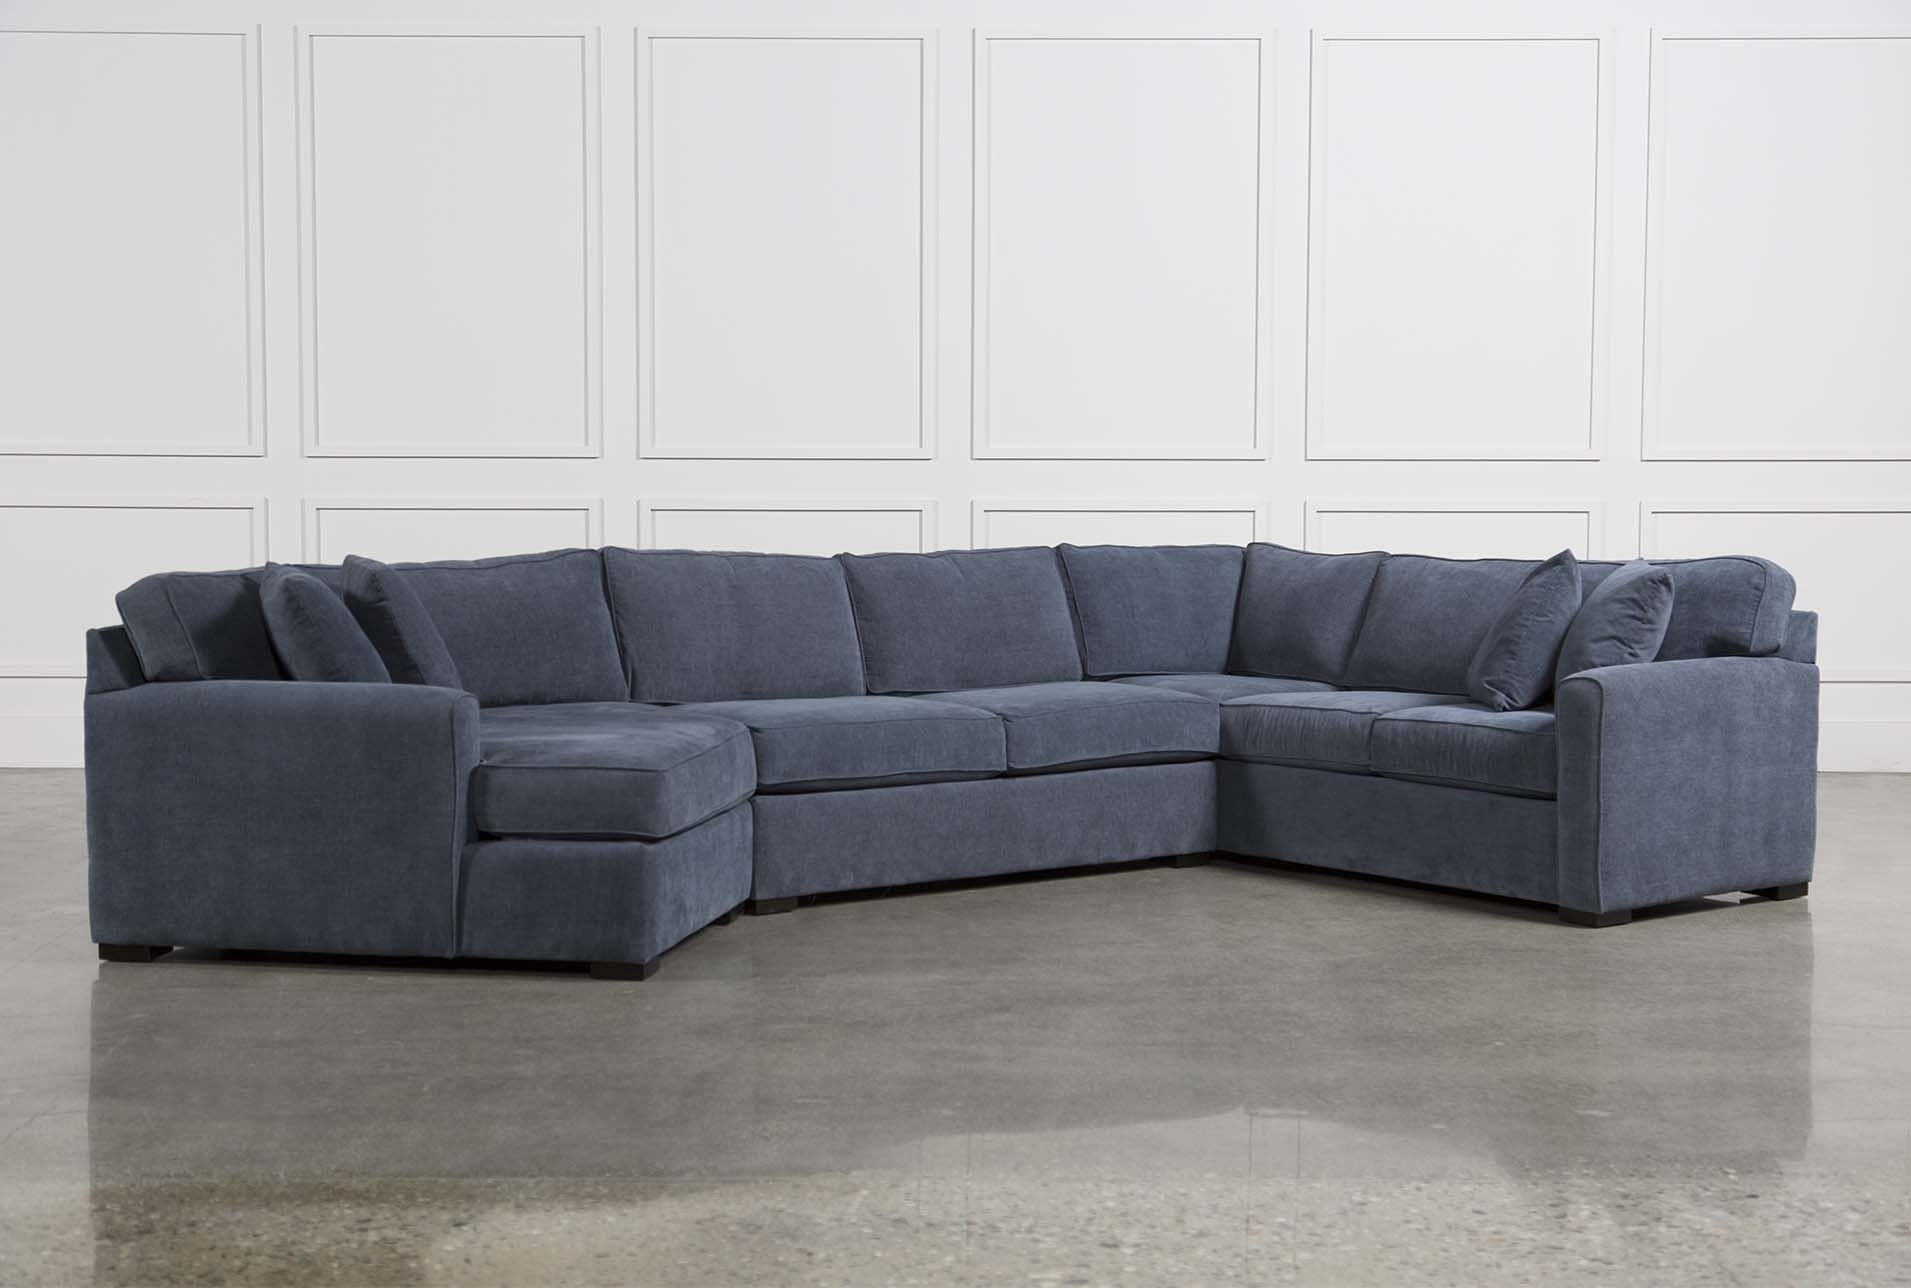 Cypress 3 Piece Sectional | Final Choices | Pinterest | Living intended for Glamour Ii 3 Piece Sectionals (Image 8 of 30)